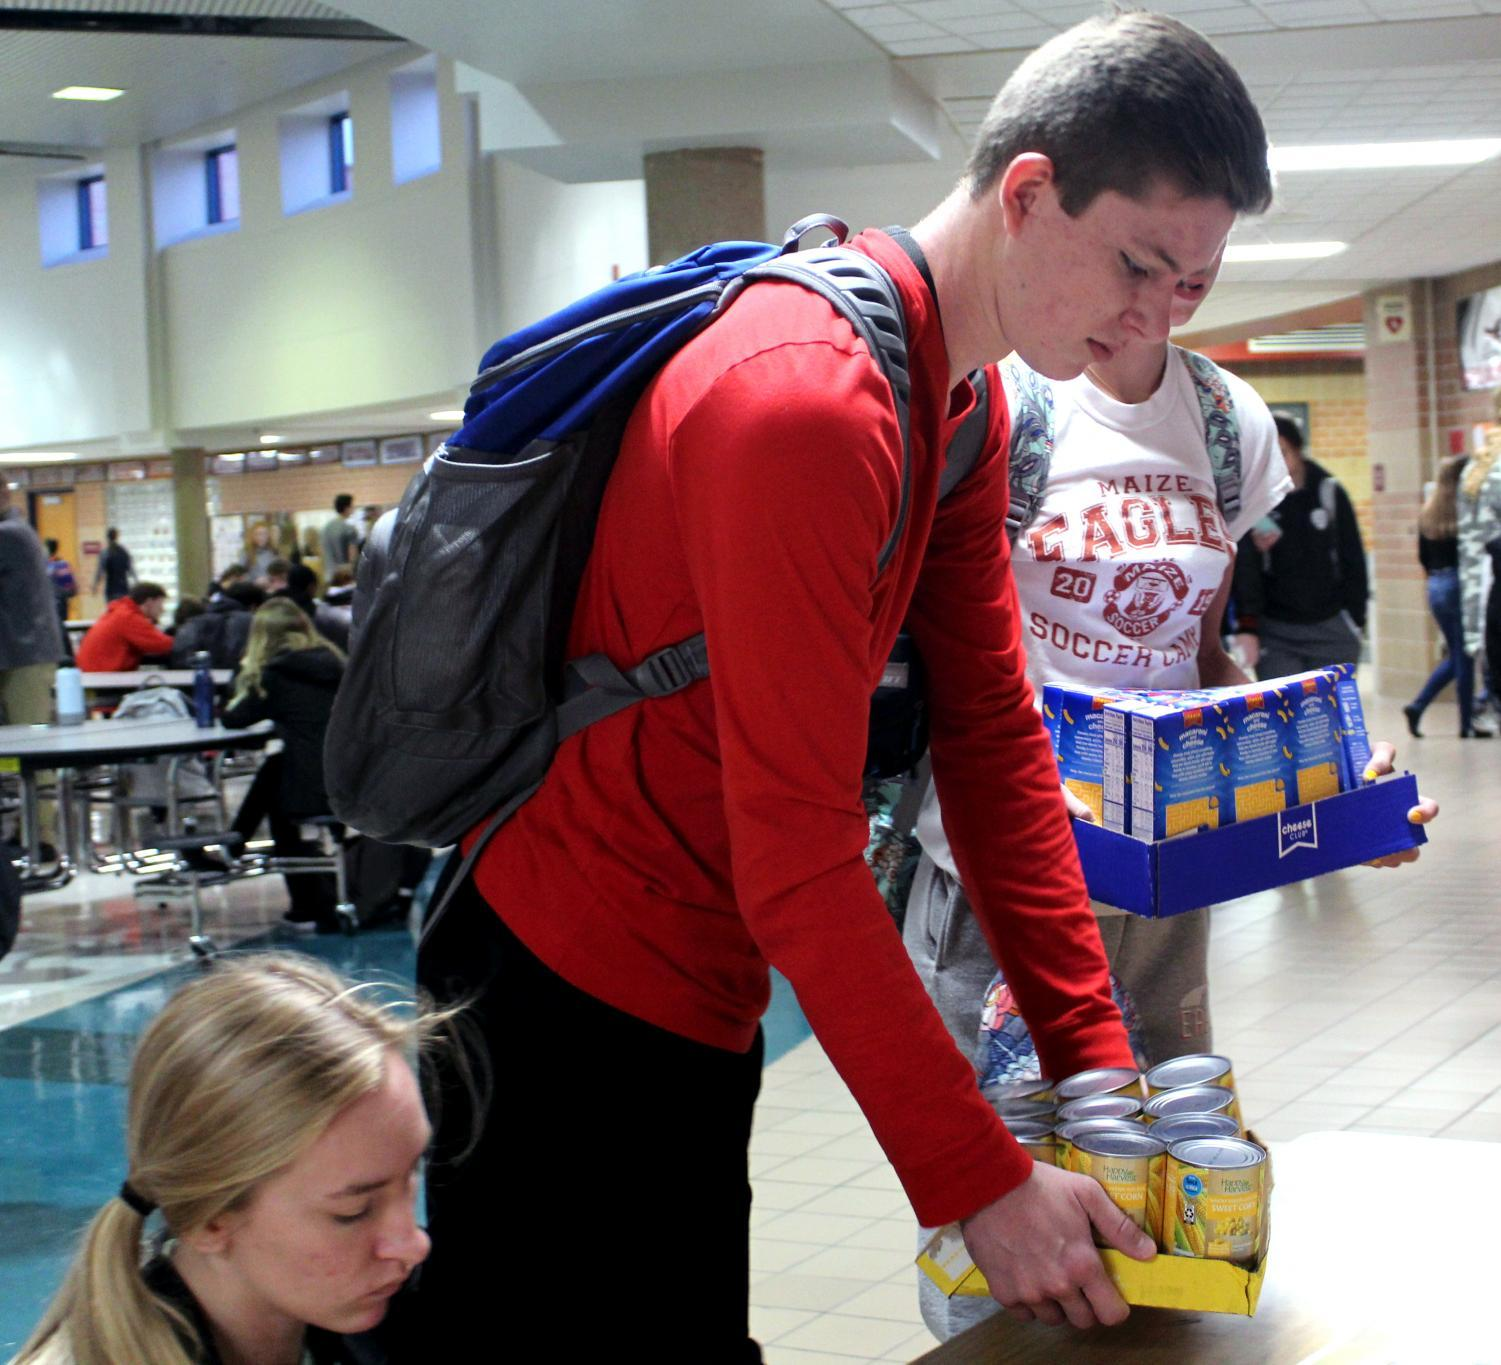 Students brought in canned food donations this week to